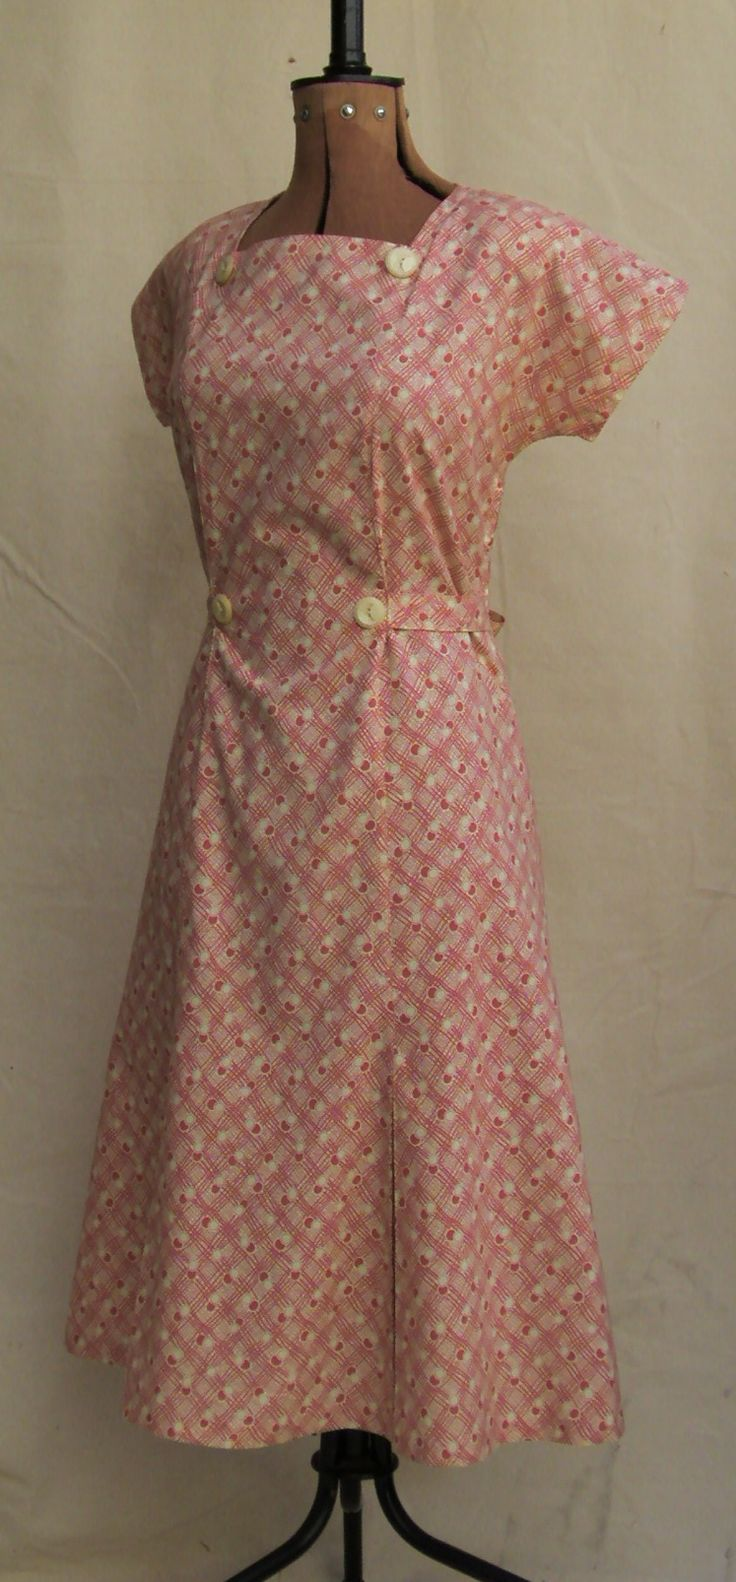 Vintage Reproduction 1930s Summer Dress In Pink Feedsack Type Cotton